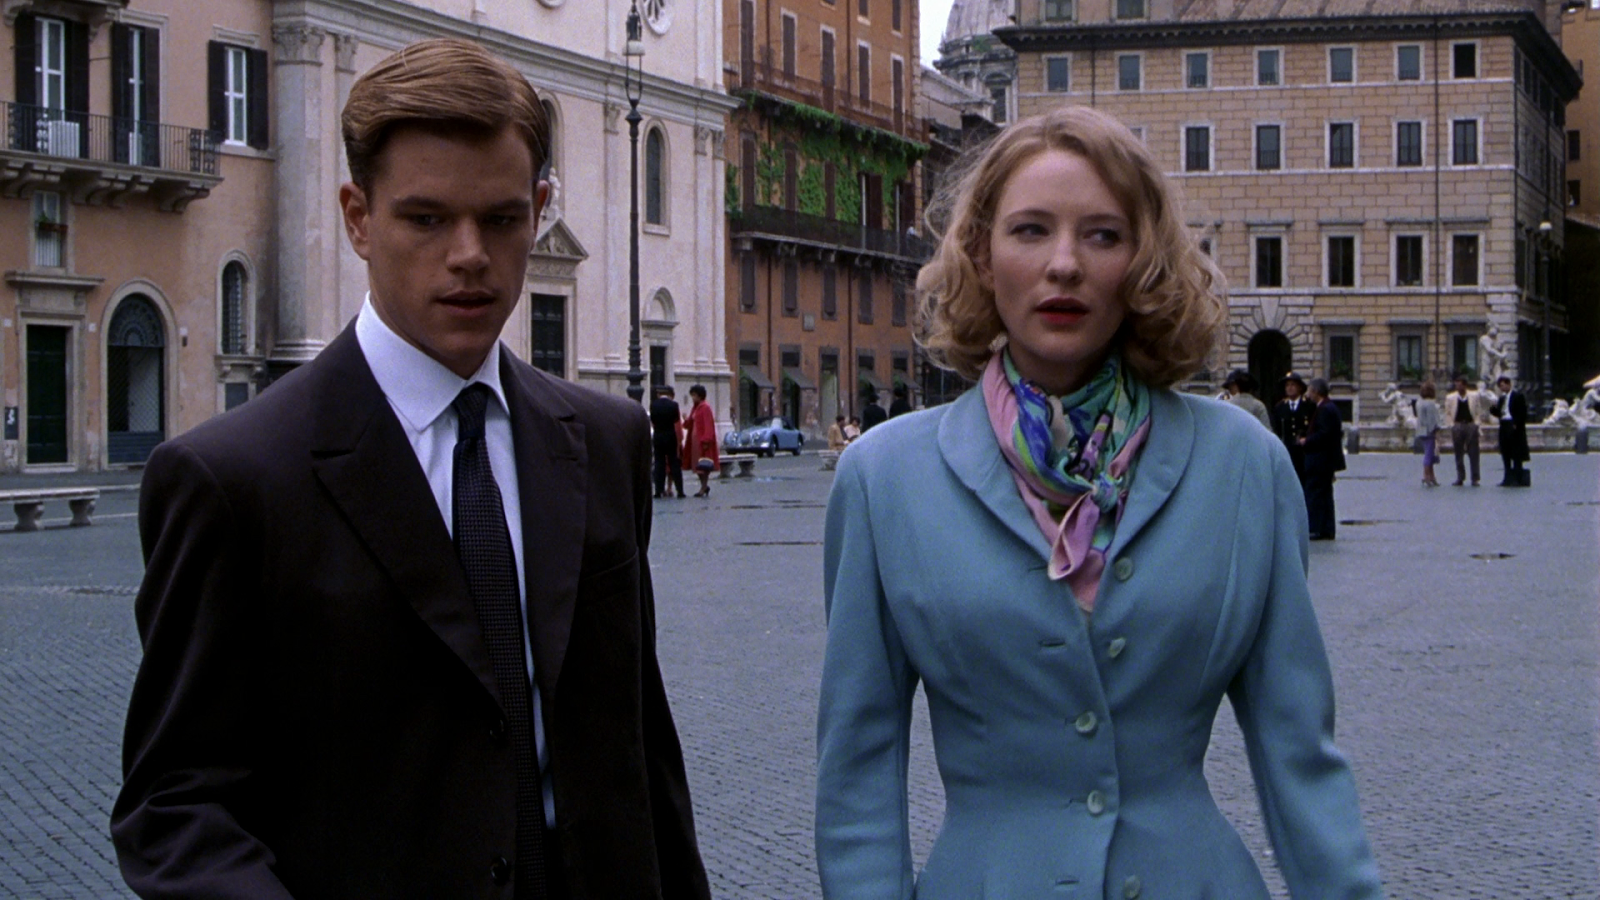 天才雷普利 The Talented Mr. Ripley Matt Damon & Cate Blanchatt